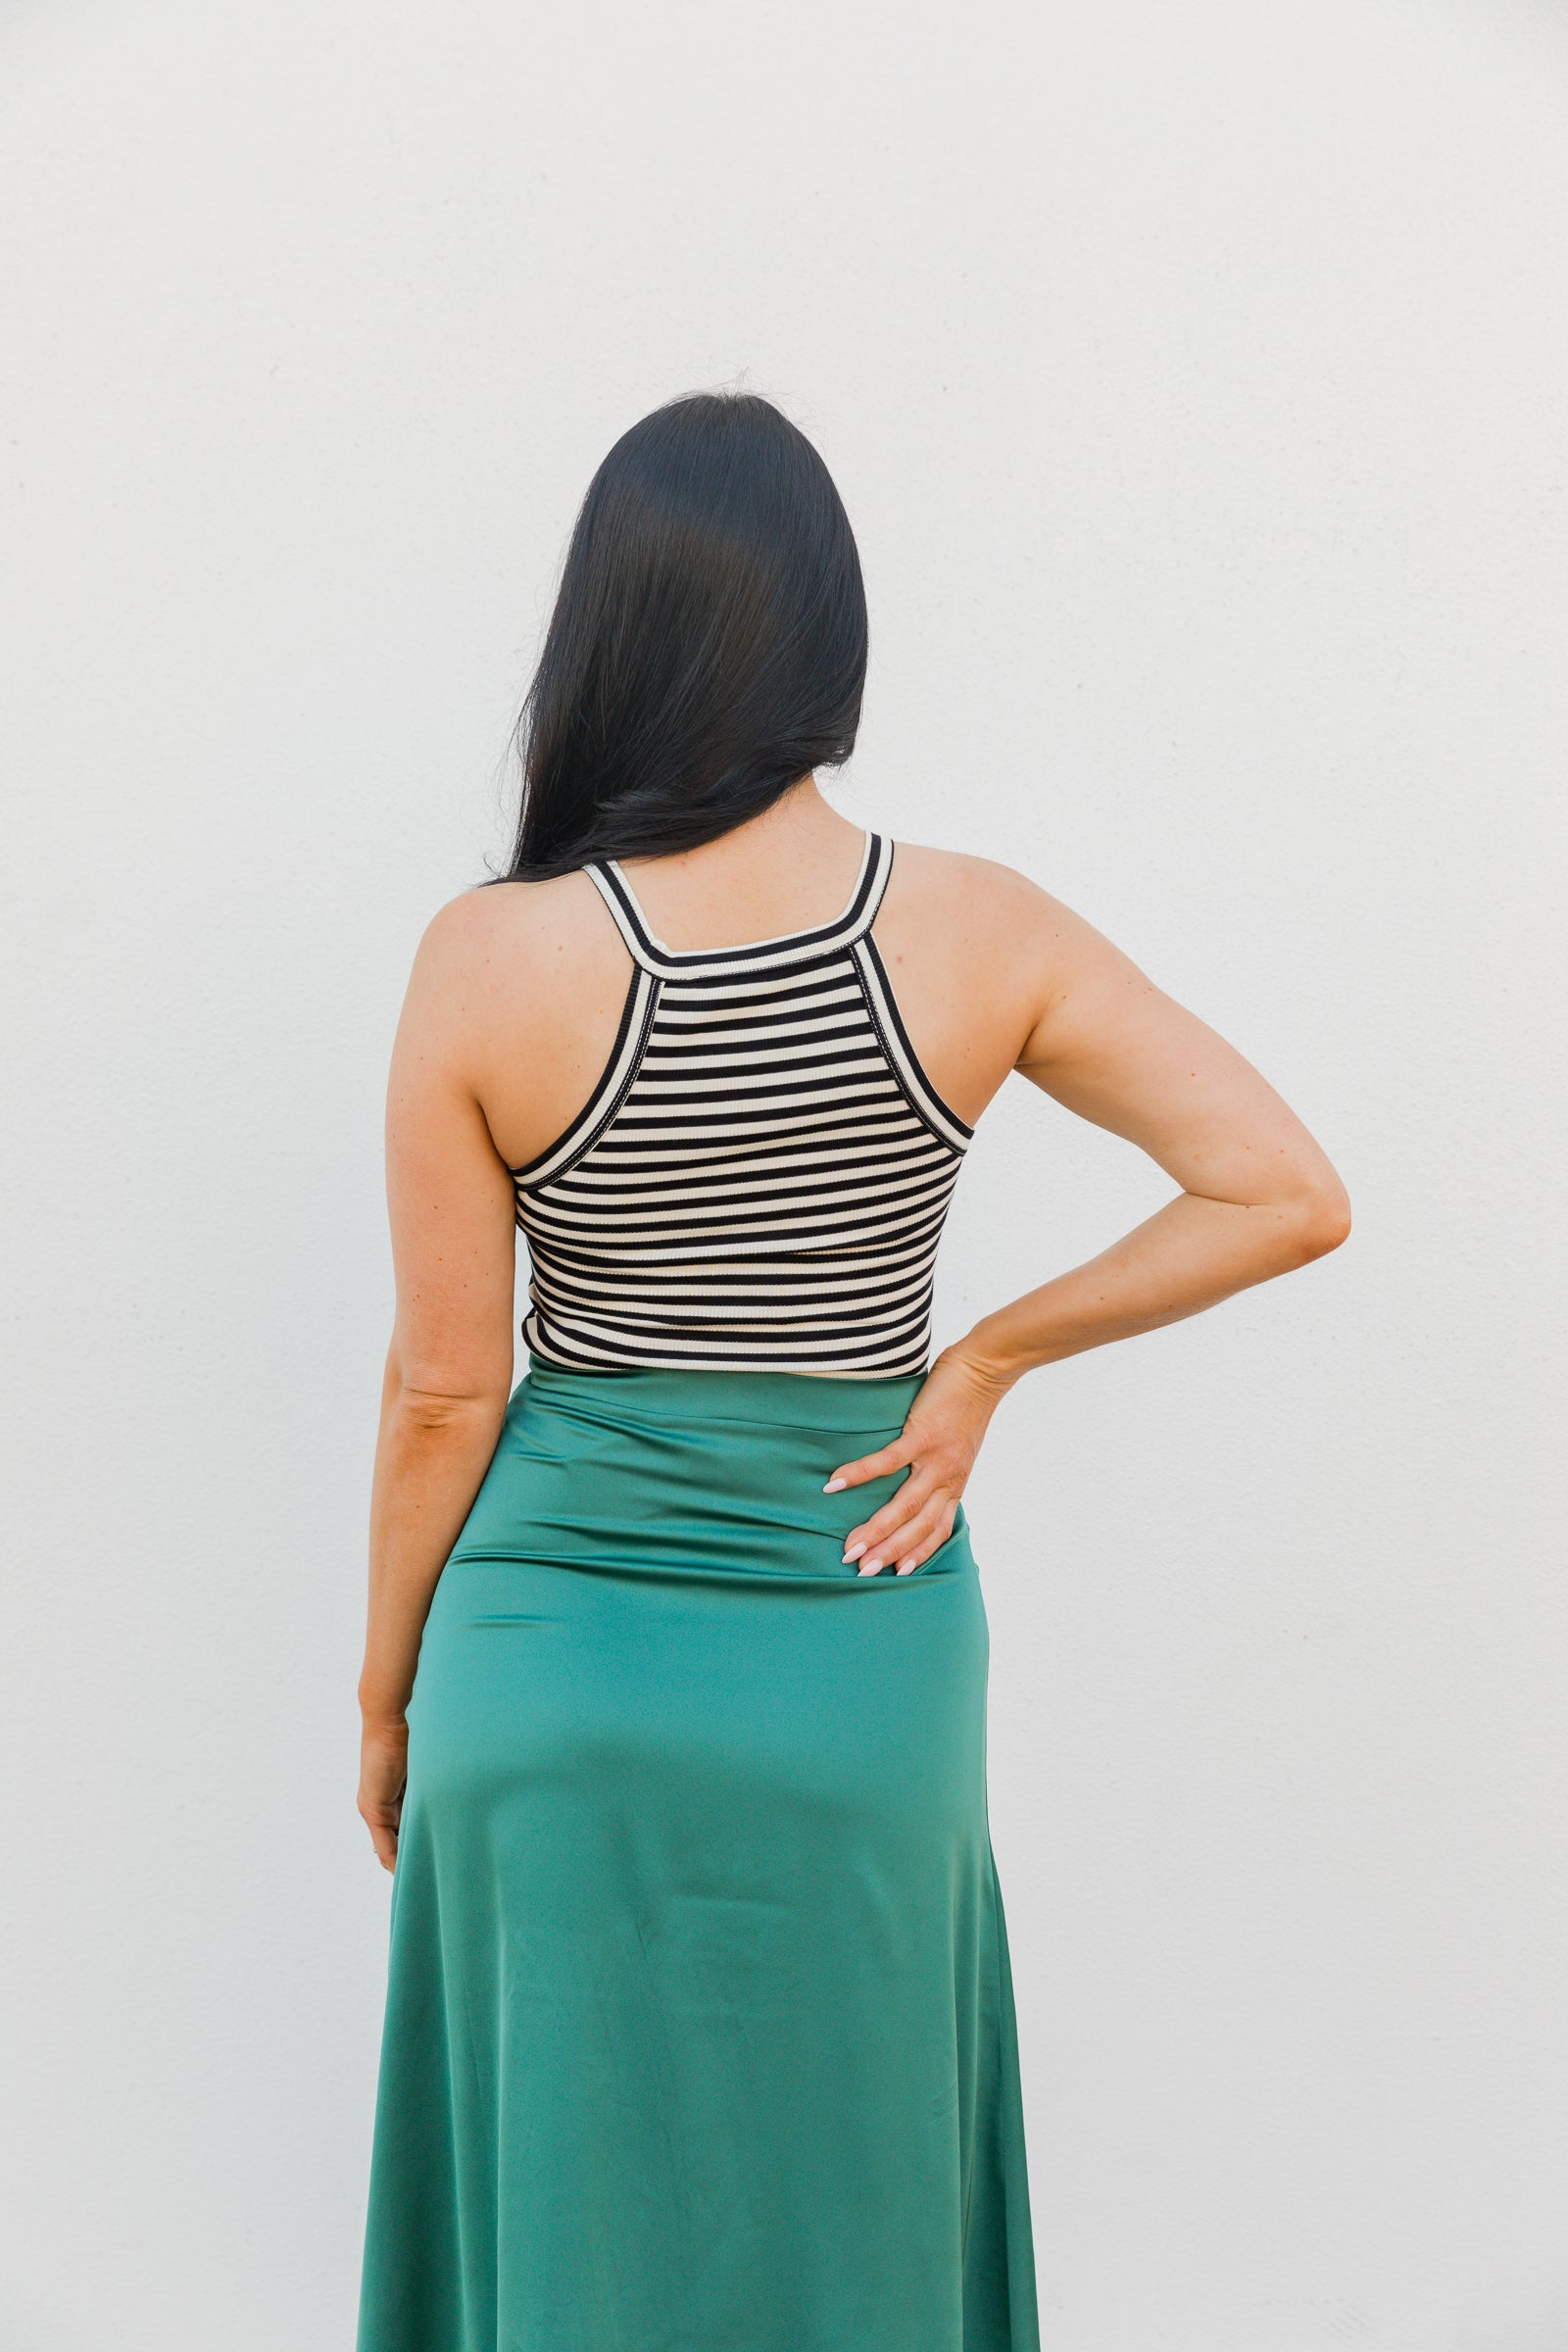 Black and white stripes run across this darling top. It is sleeveless with a high banded u-neckline, with banded armholes on a ribbed and cropped bodice.